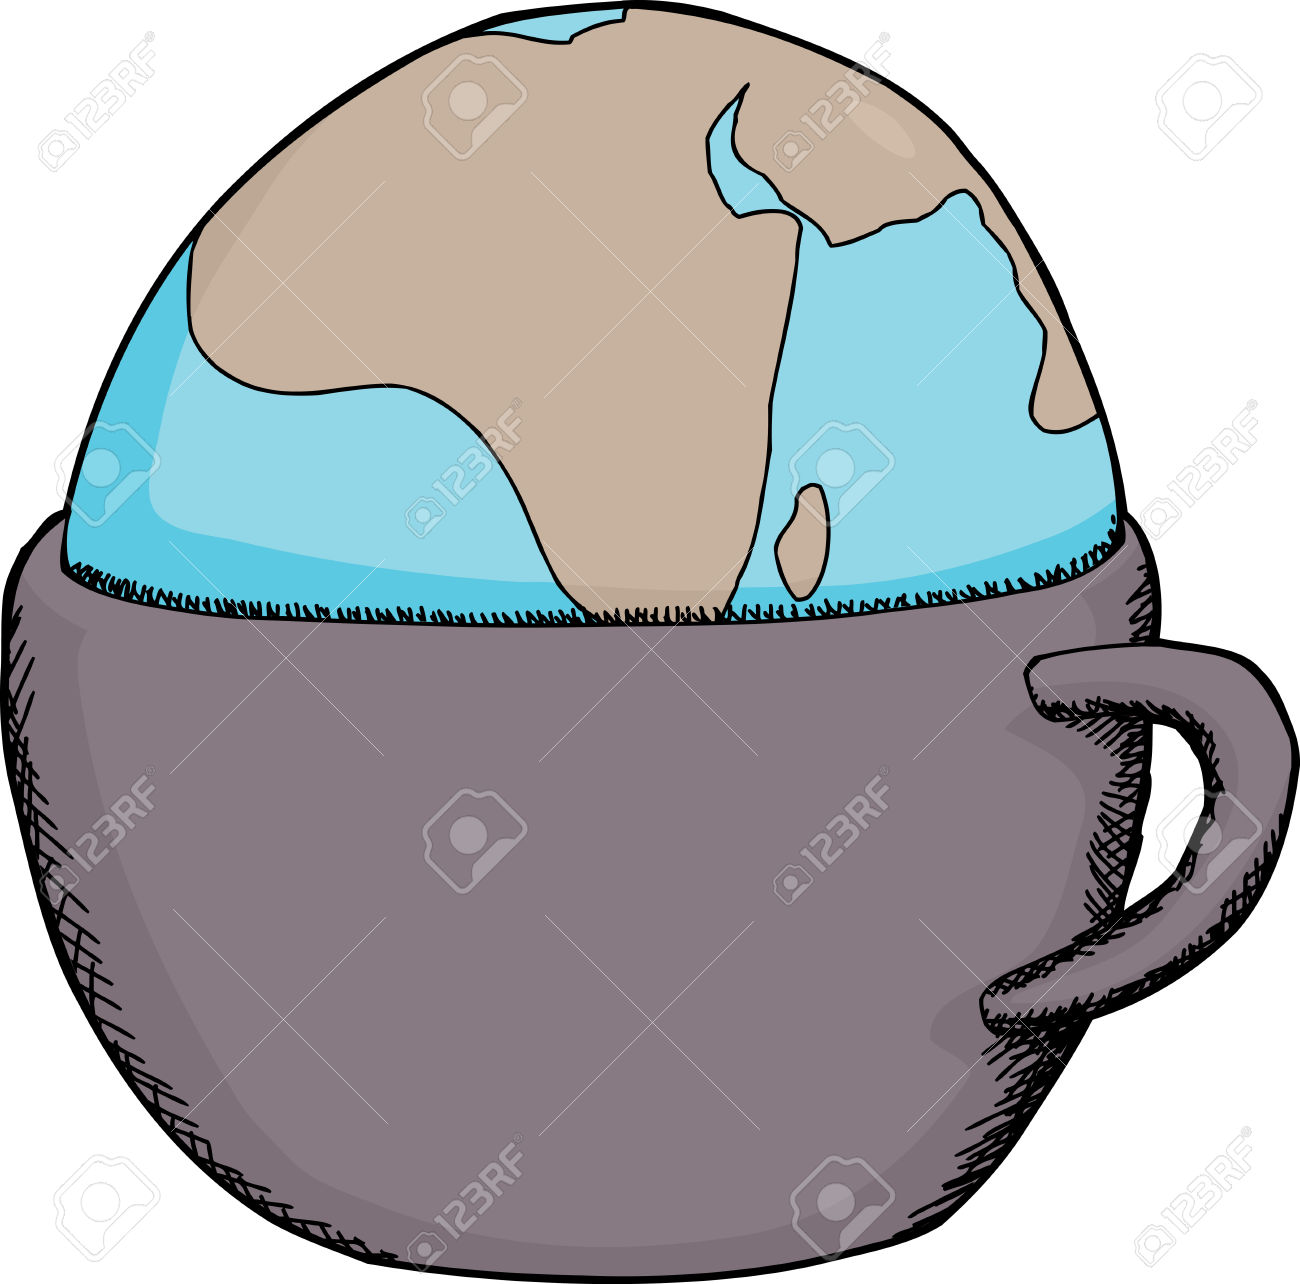 Hand Drawn Cartoon Of Globe Inside Drinking Cup Royalty Free.